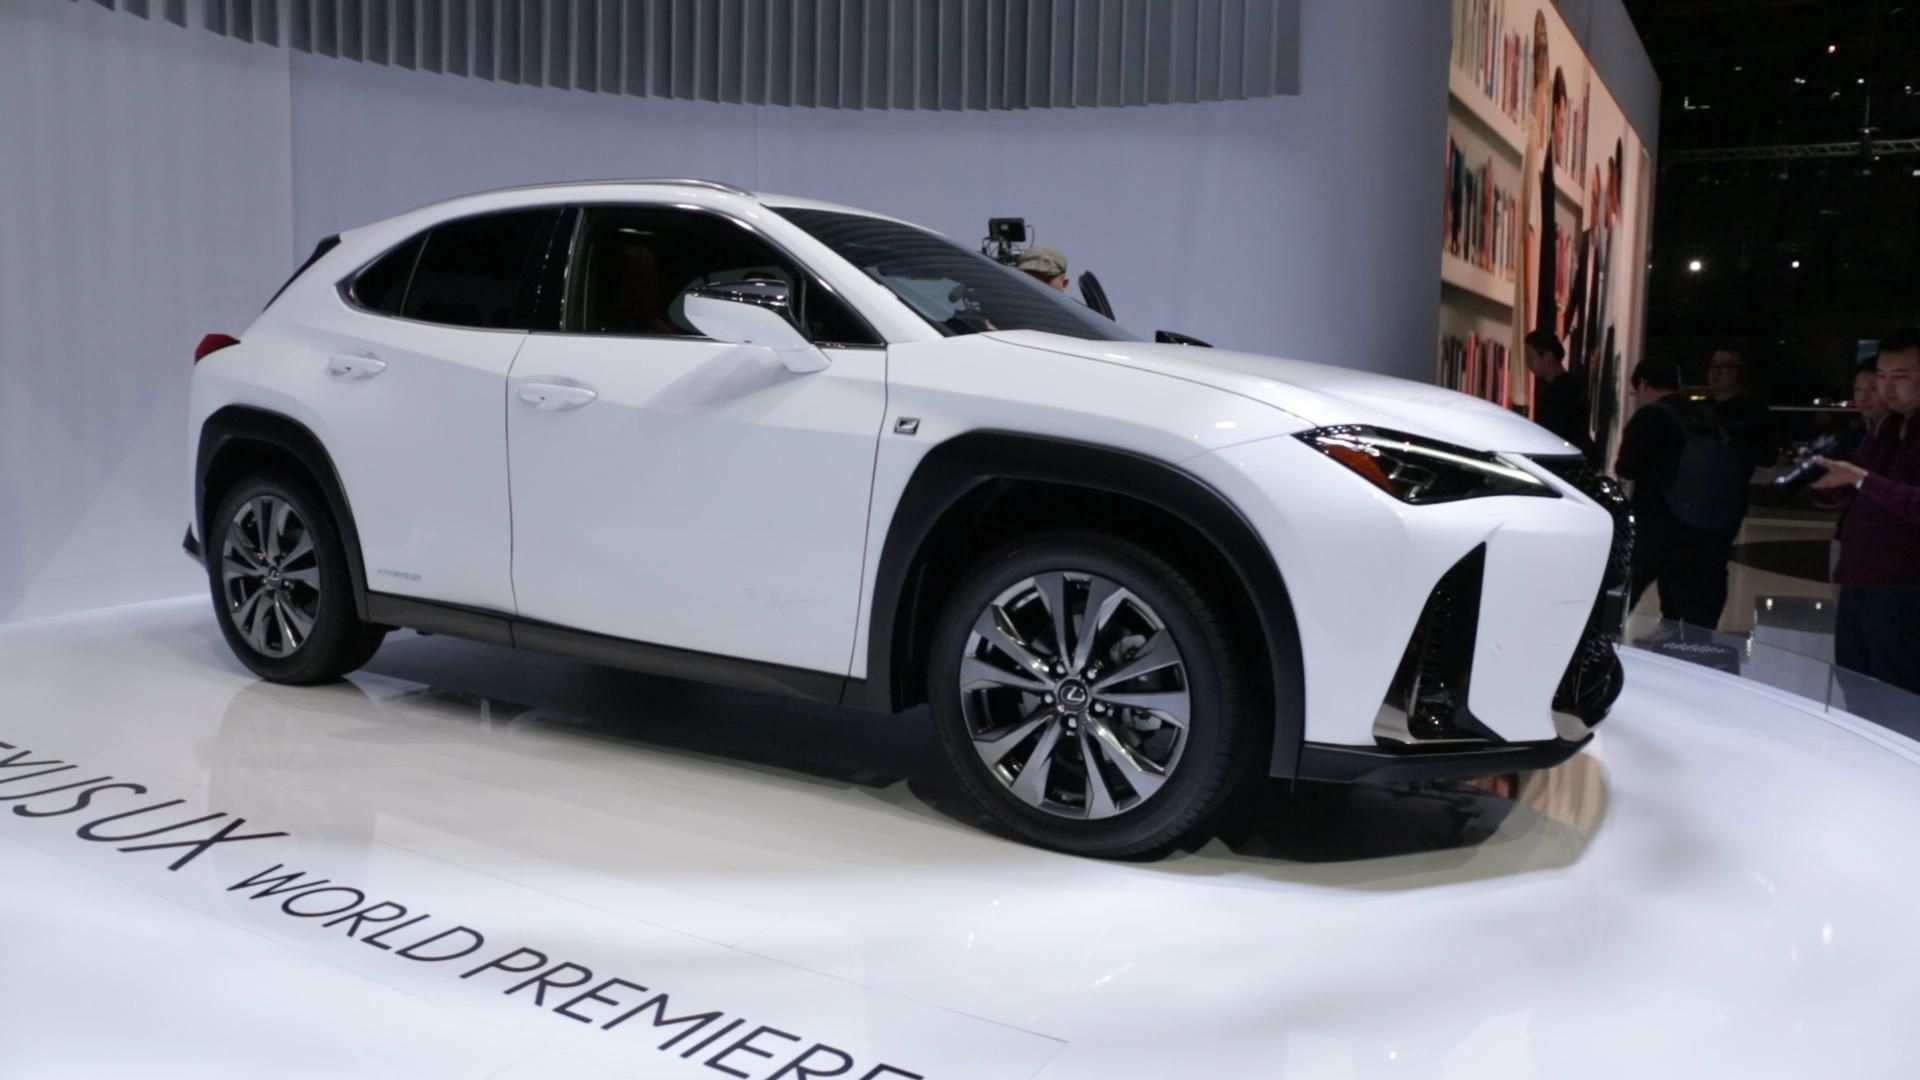 15 All New 2020 Lexus Ux Exterior Canada Rumors for 2020 Lexus Ux Exterior Canada